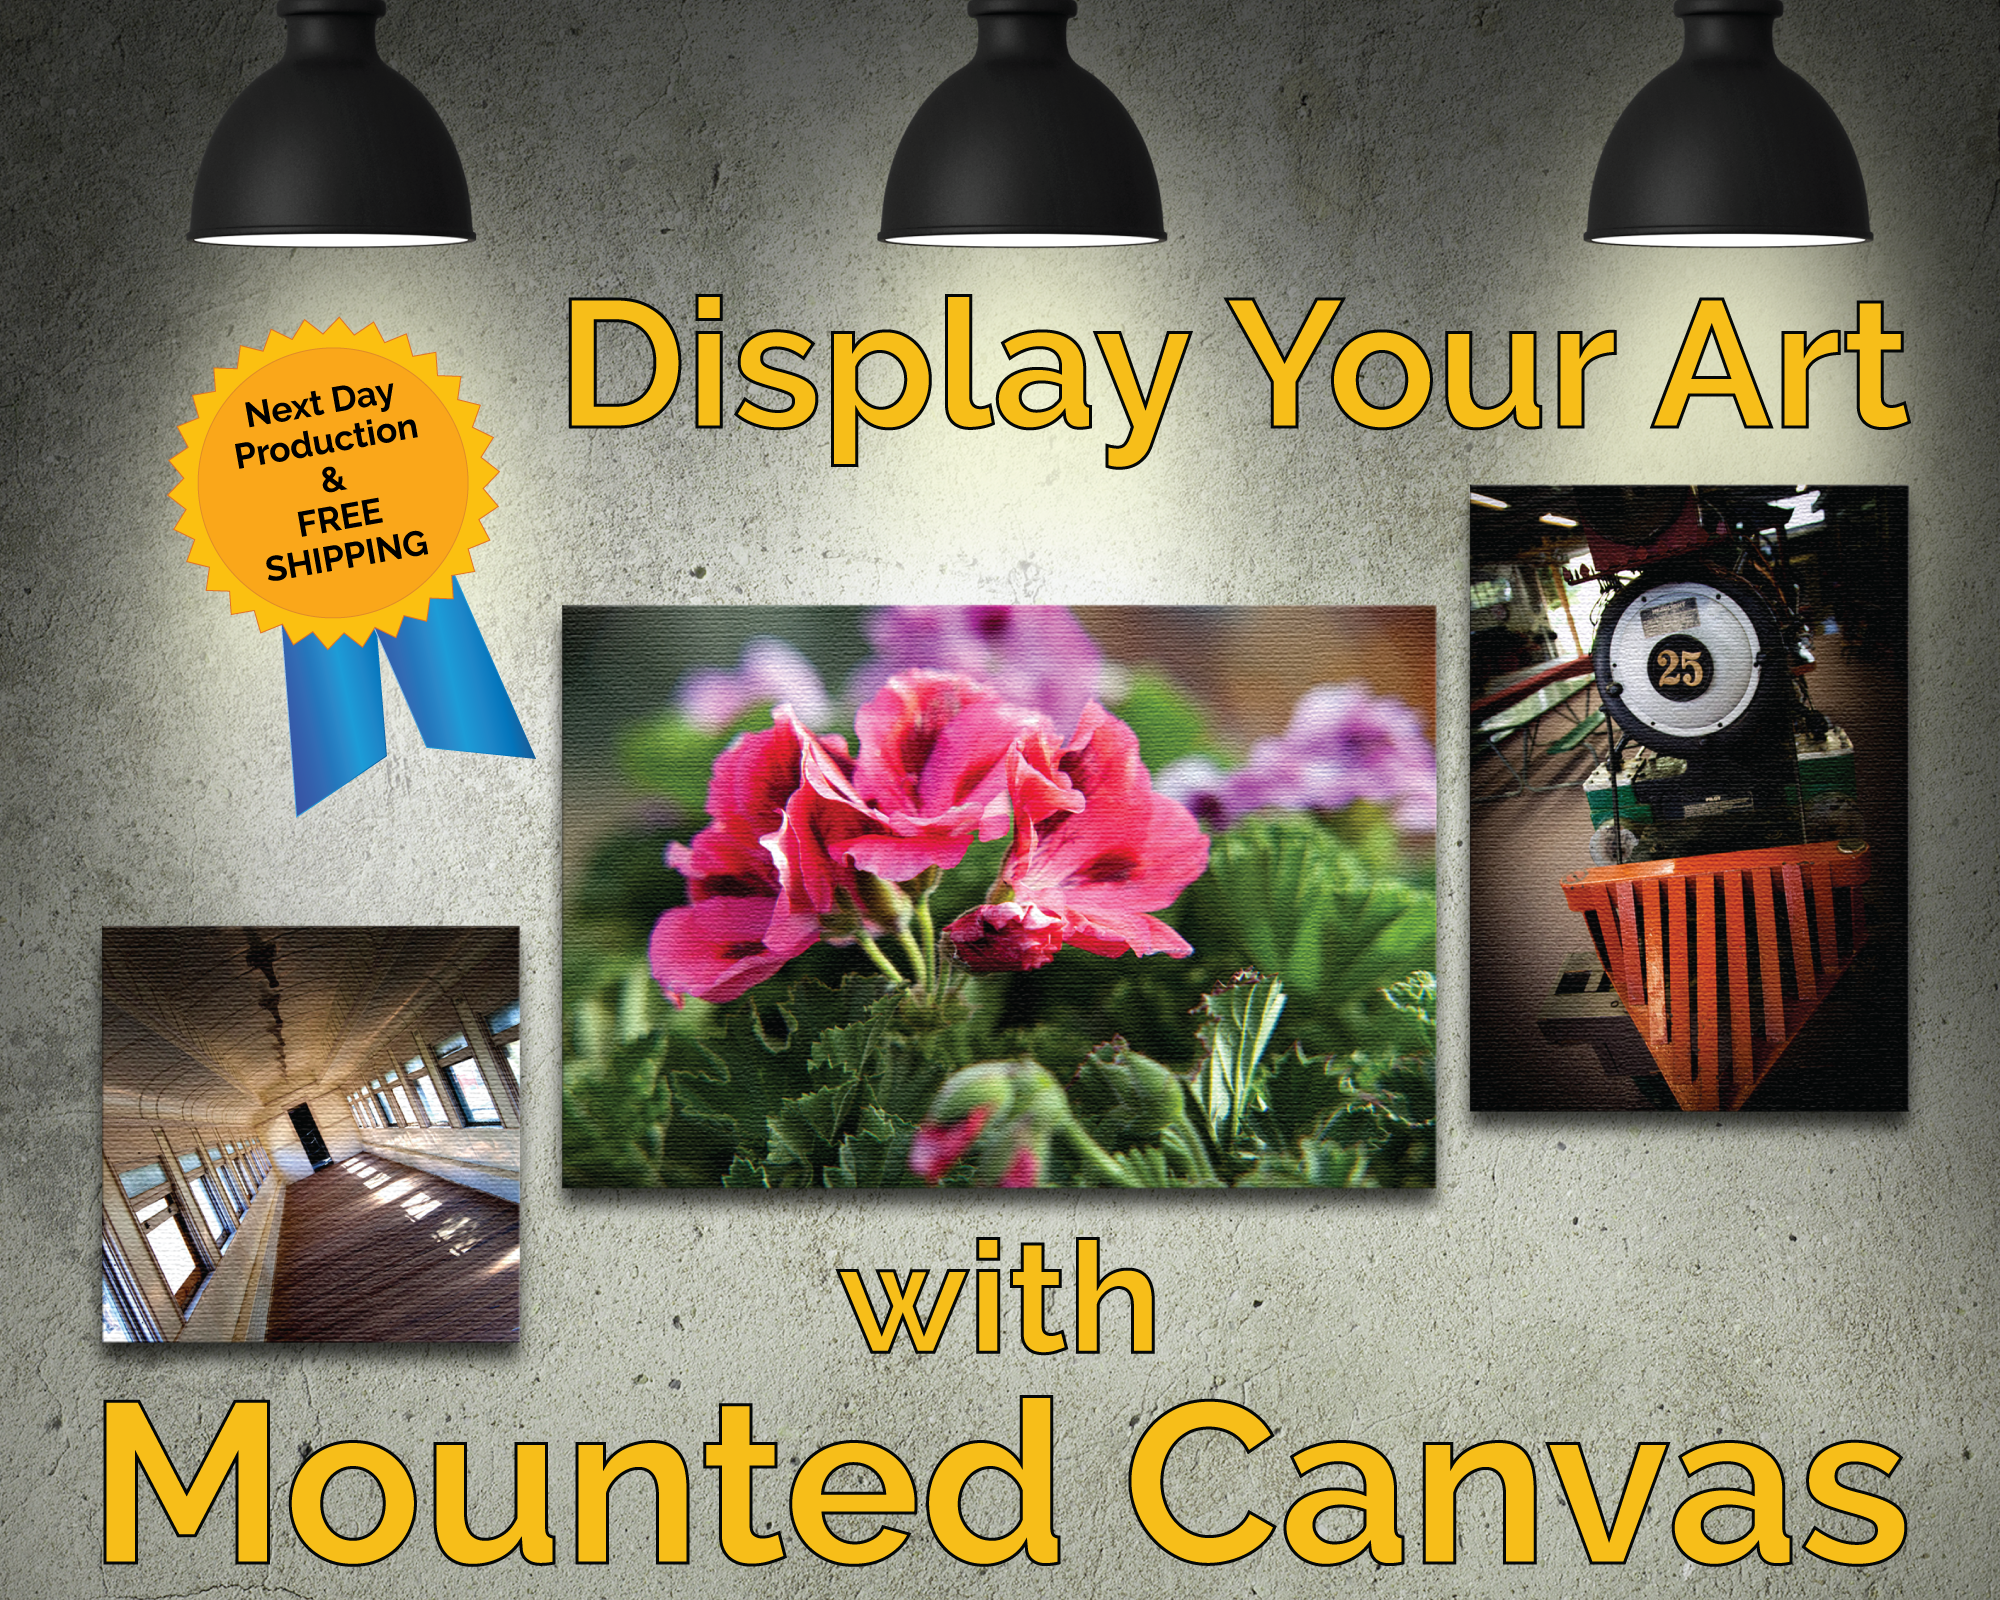 Display your art on Mounted Canvas, Order Today at myPrintingDeals.com